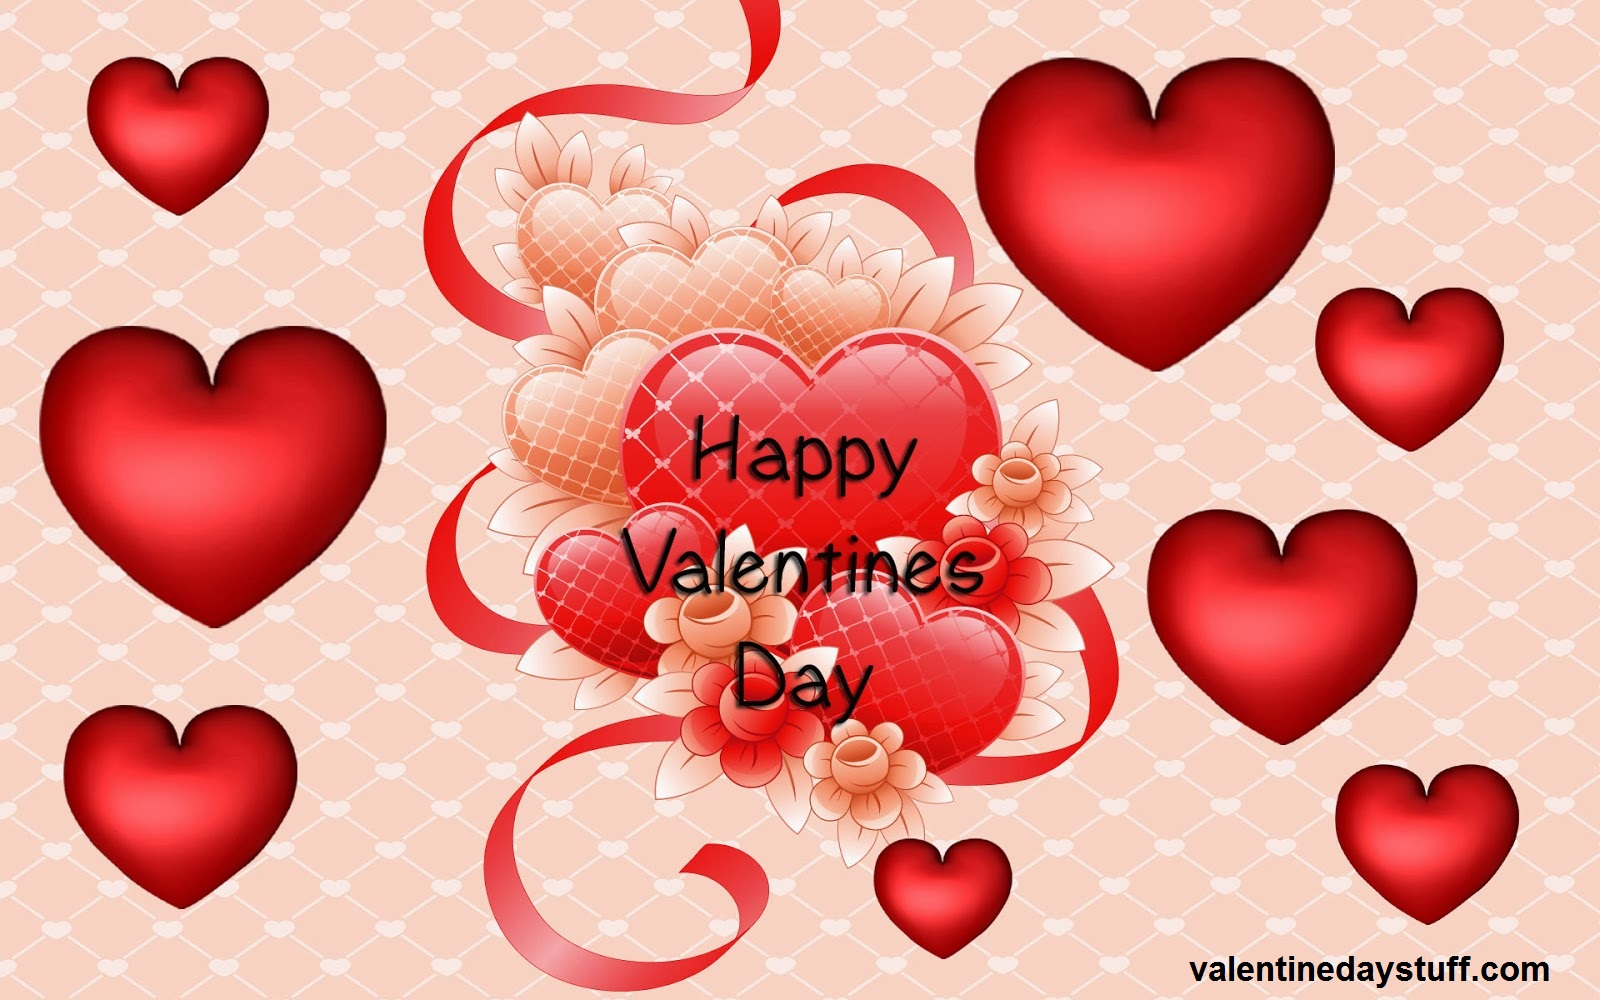 Happy Valentines Day Greeting Cards 2017 Free Download Techicy – Happy Valentines Day 2015 Cards